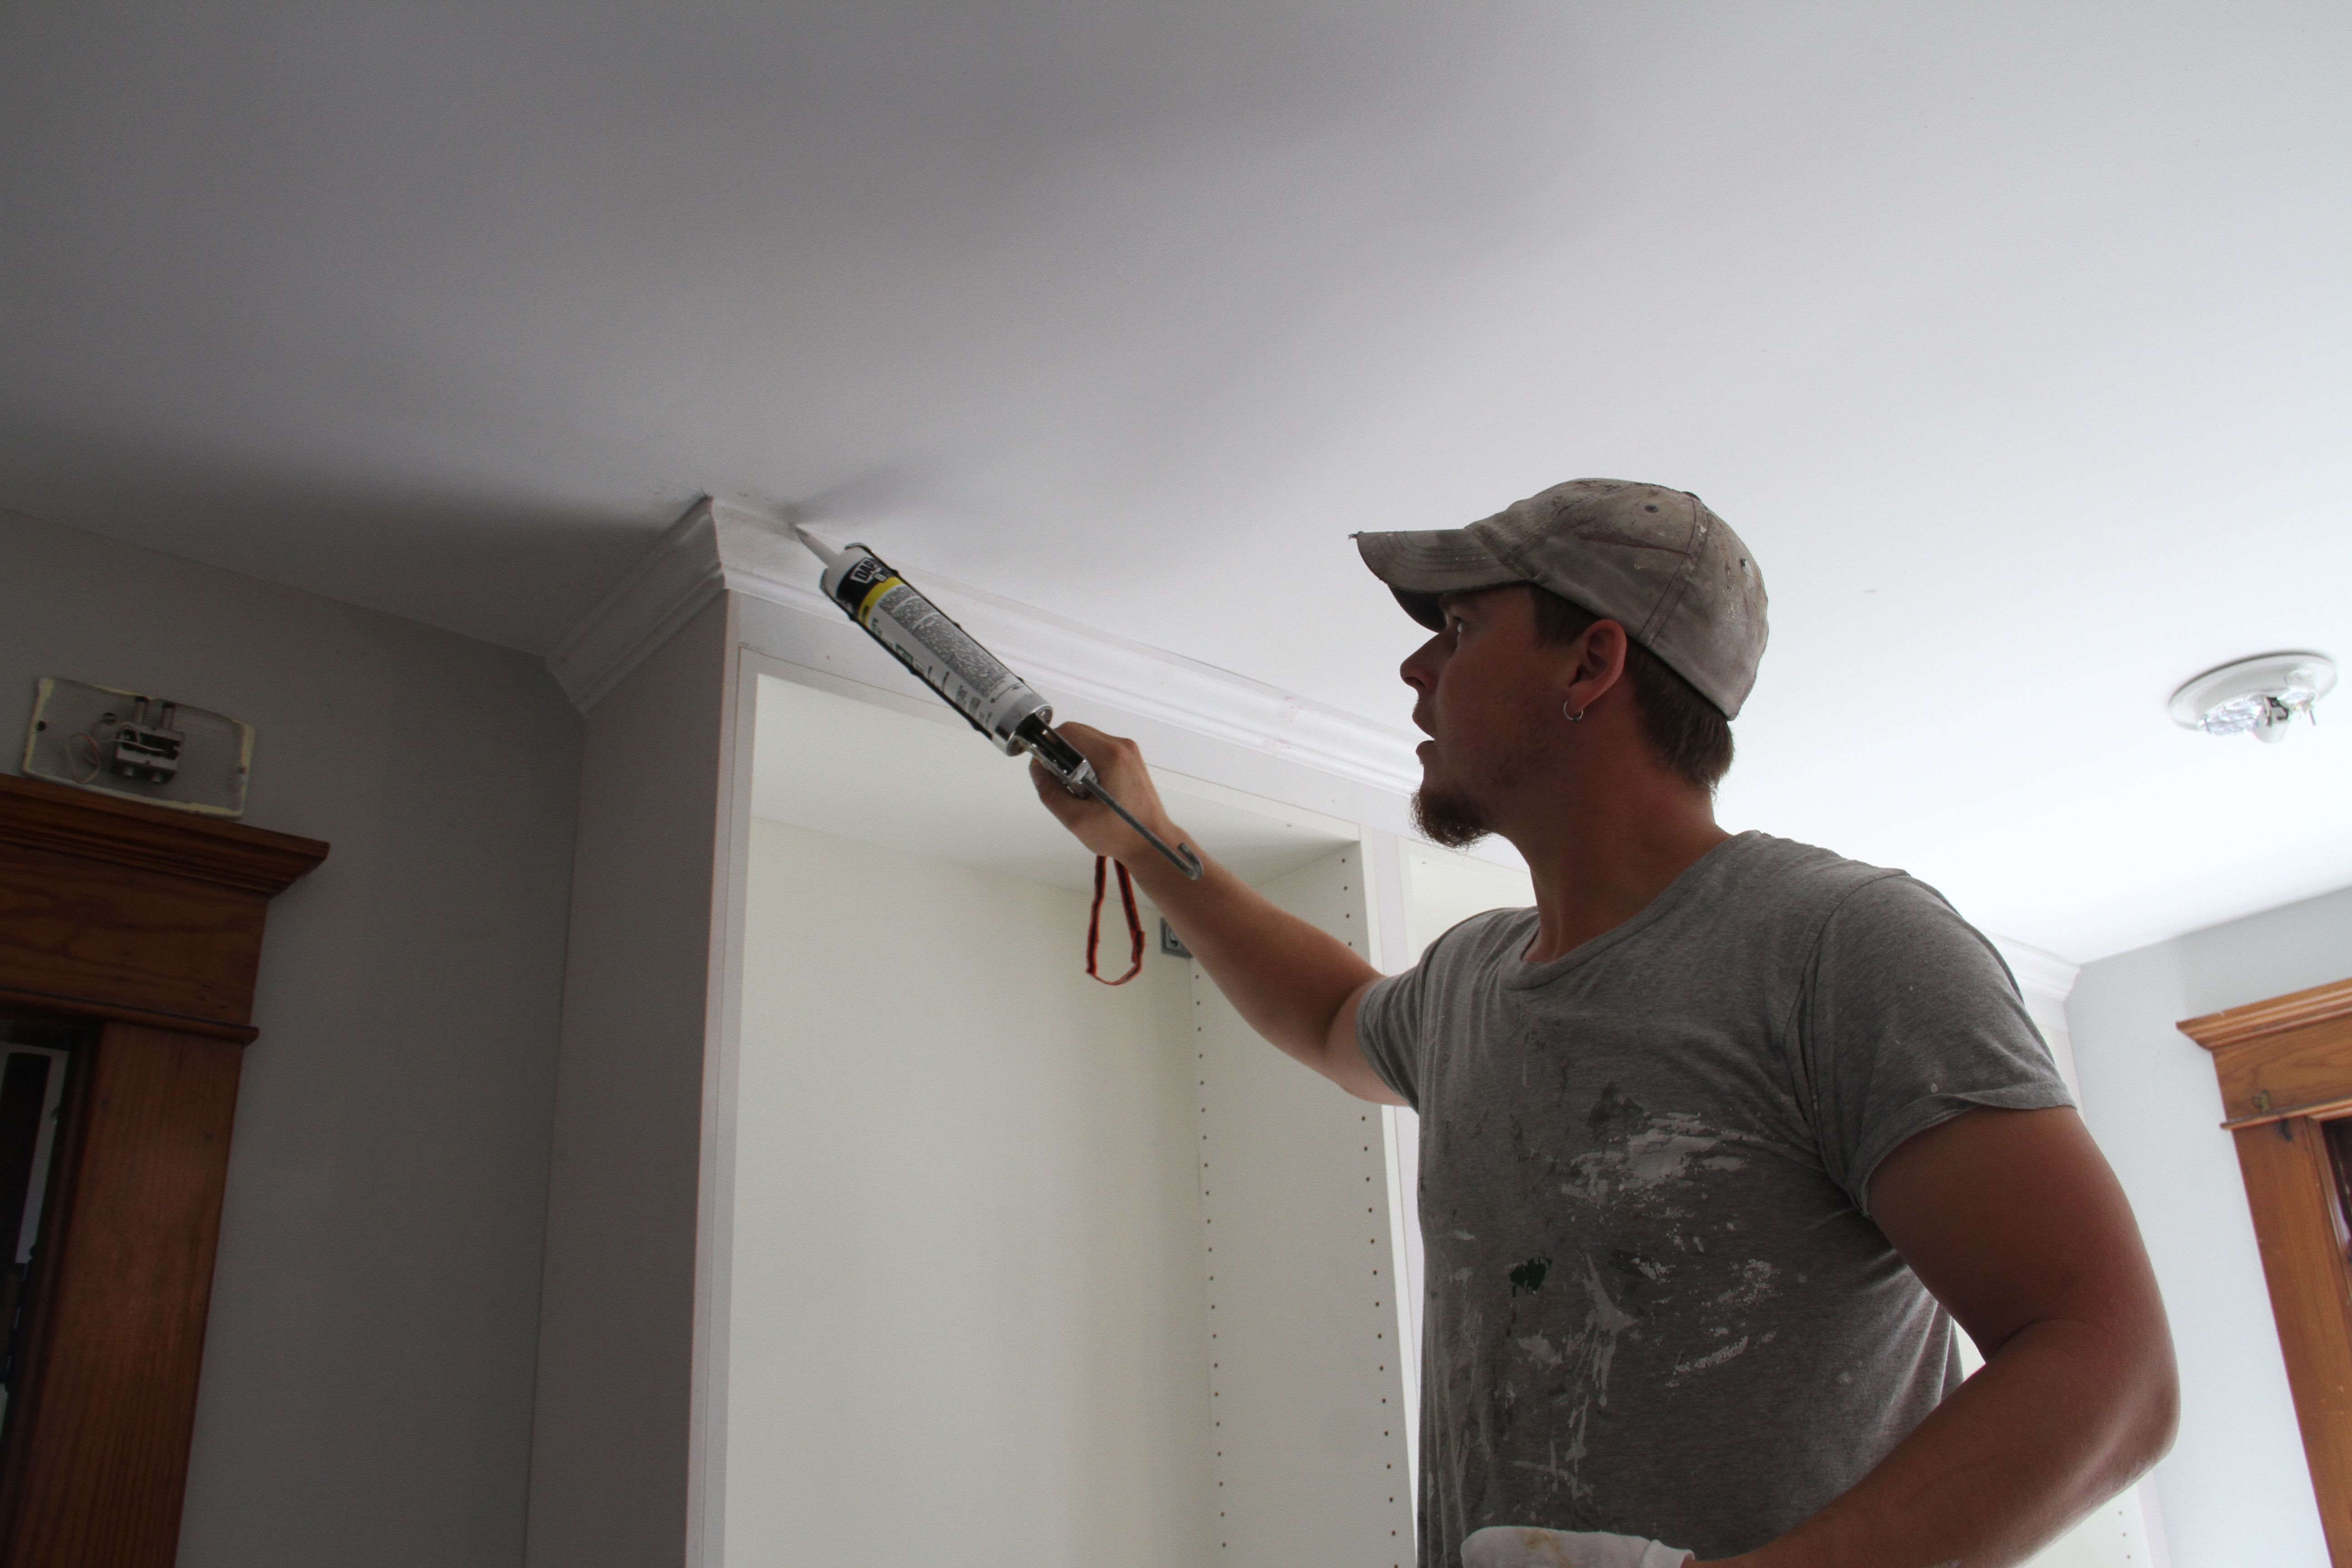 Brian rocking out with his caulking out. (Did I just go too far?)